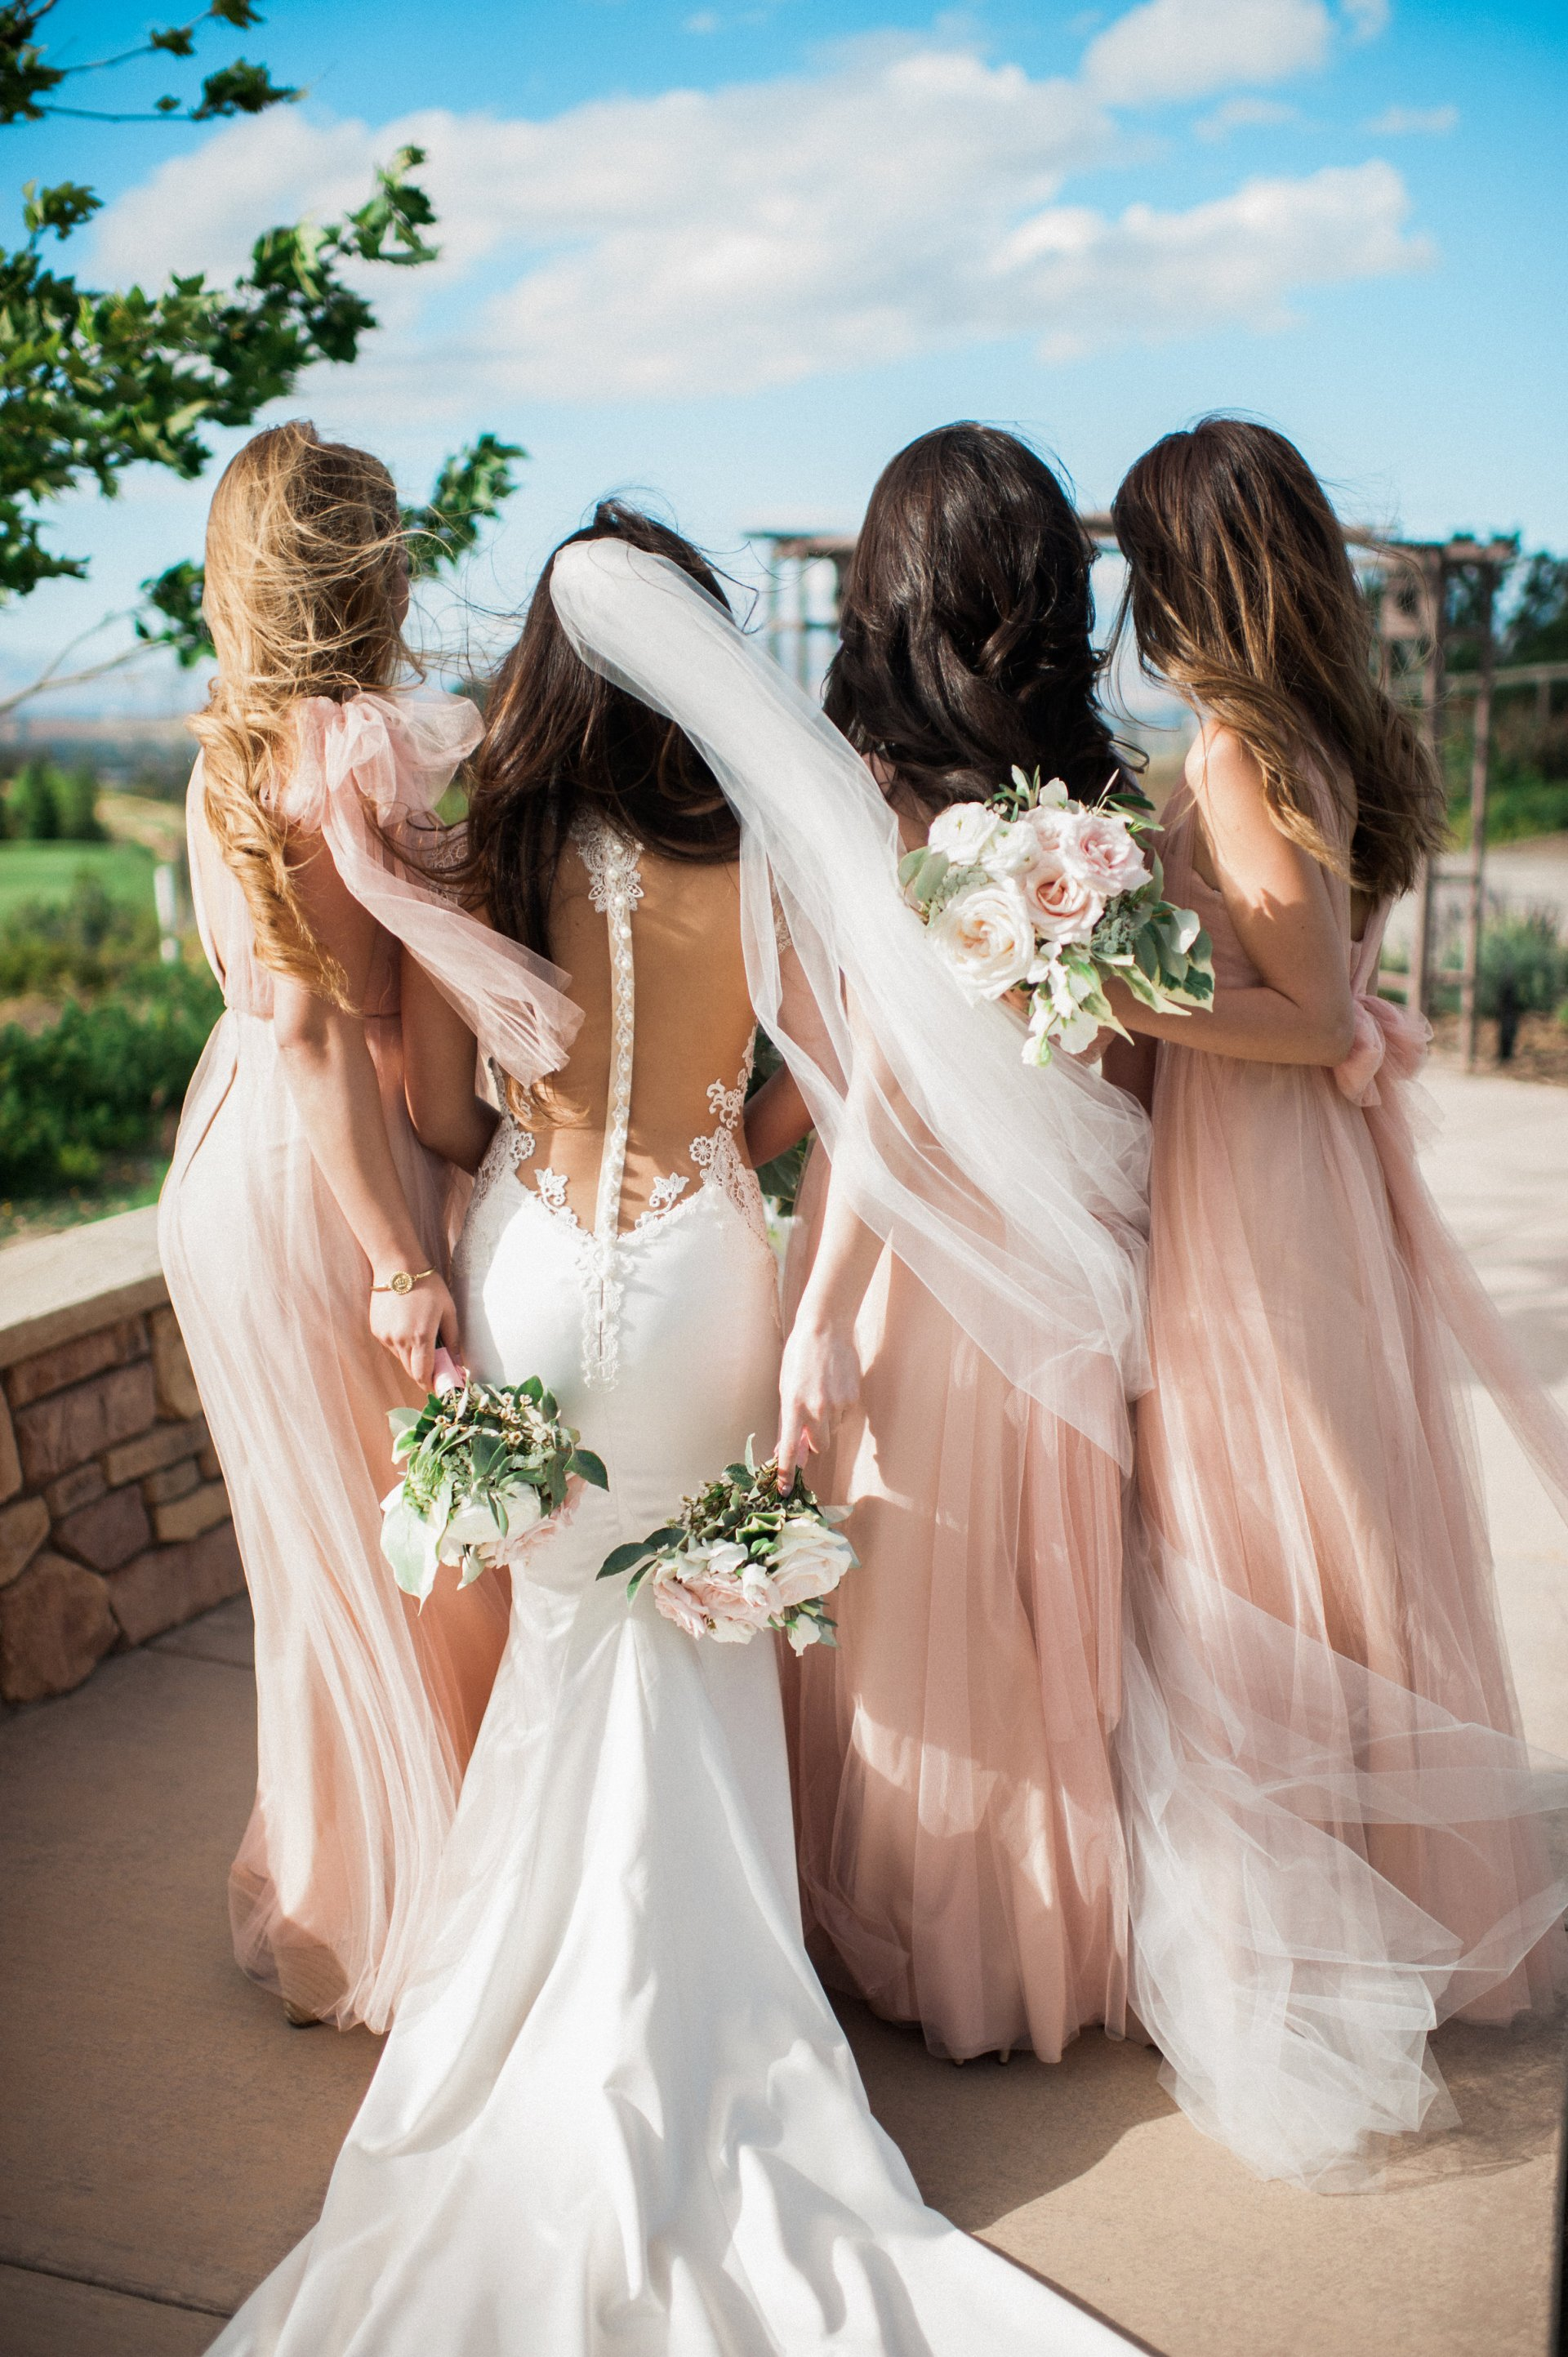 How To Be the Most Beautiful Bride Ever - HONESTLY // Bridal Beauty Inspiration // SHEER EVER AFTER WEDDINGS               bit.ly/Sheereverafter